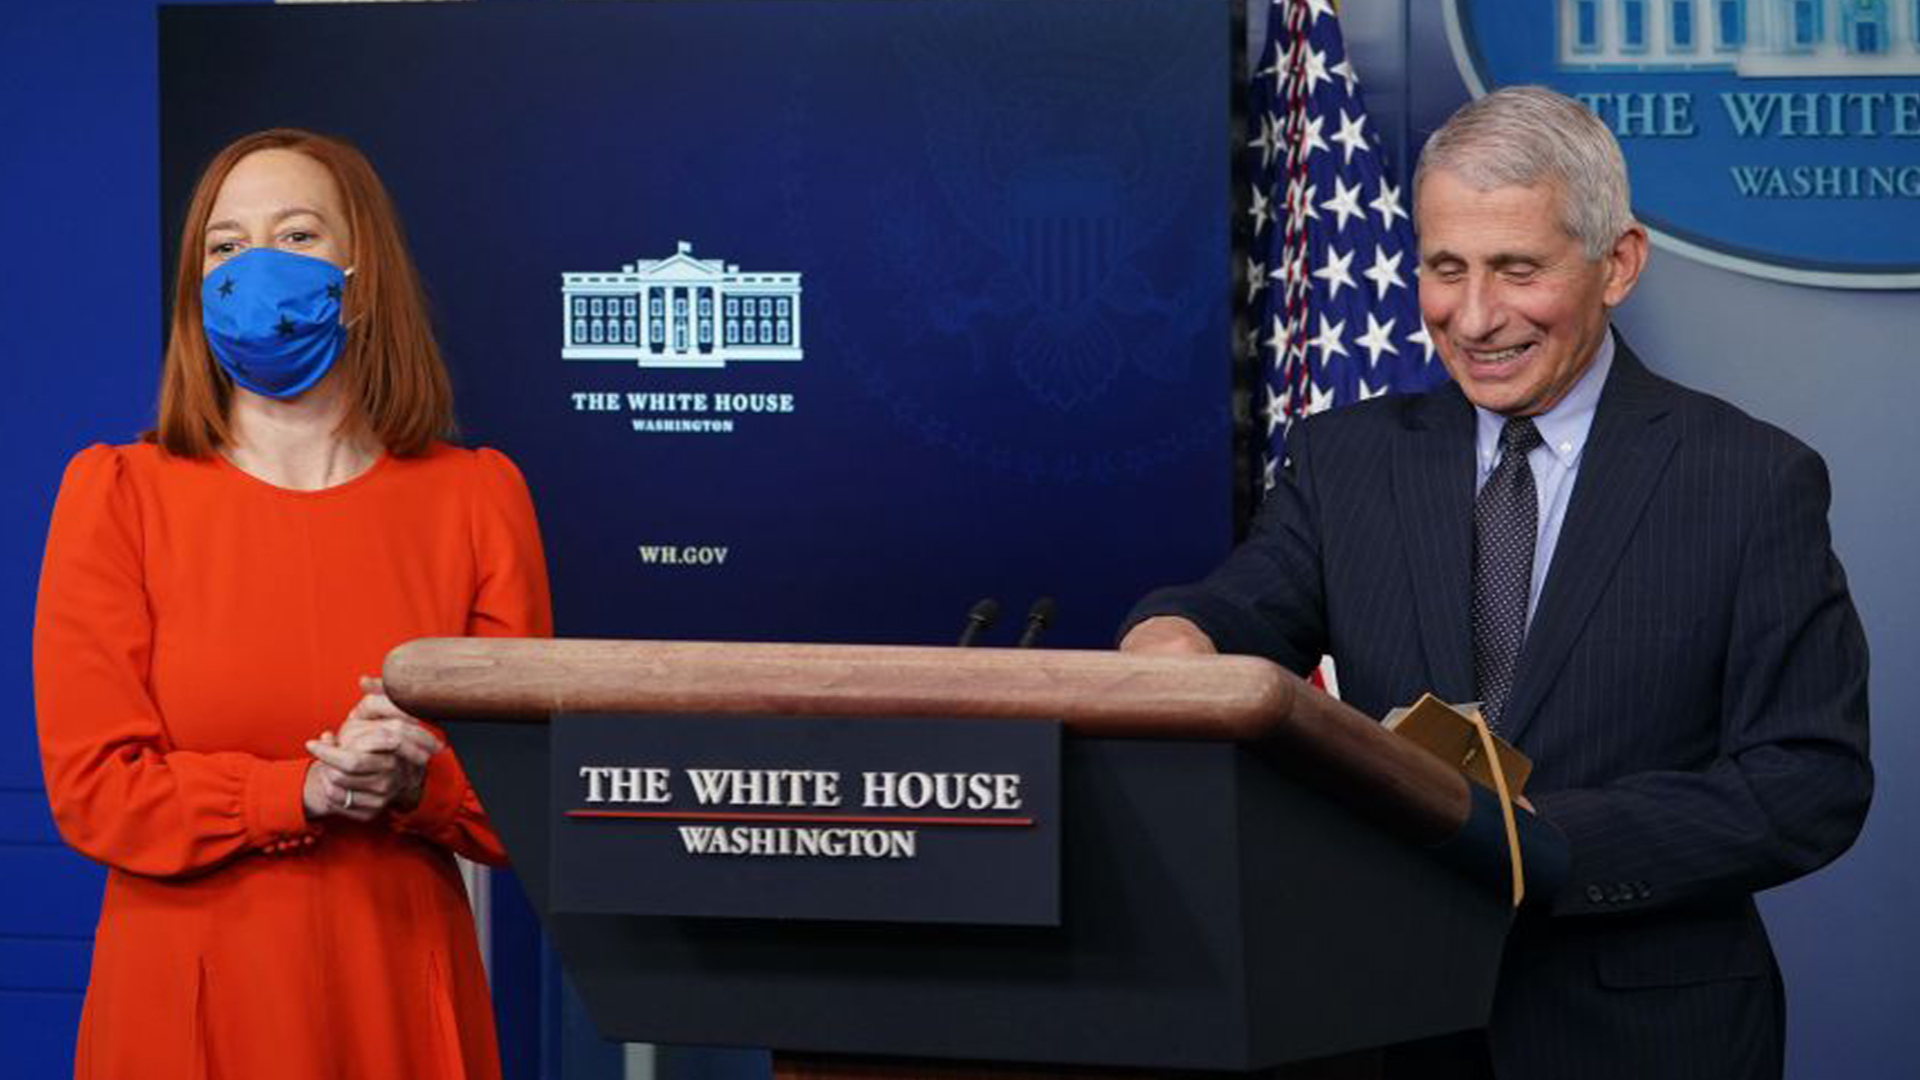 Dr. Fauci resumes coronavirus briefings at White House under Biden  administration | WFLA